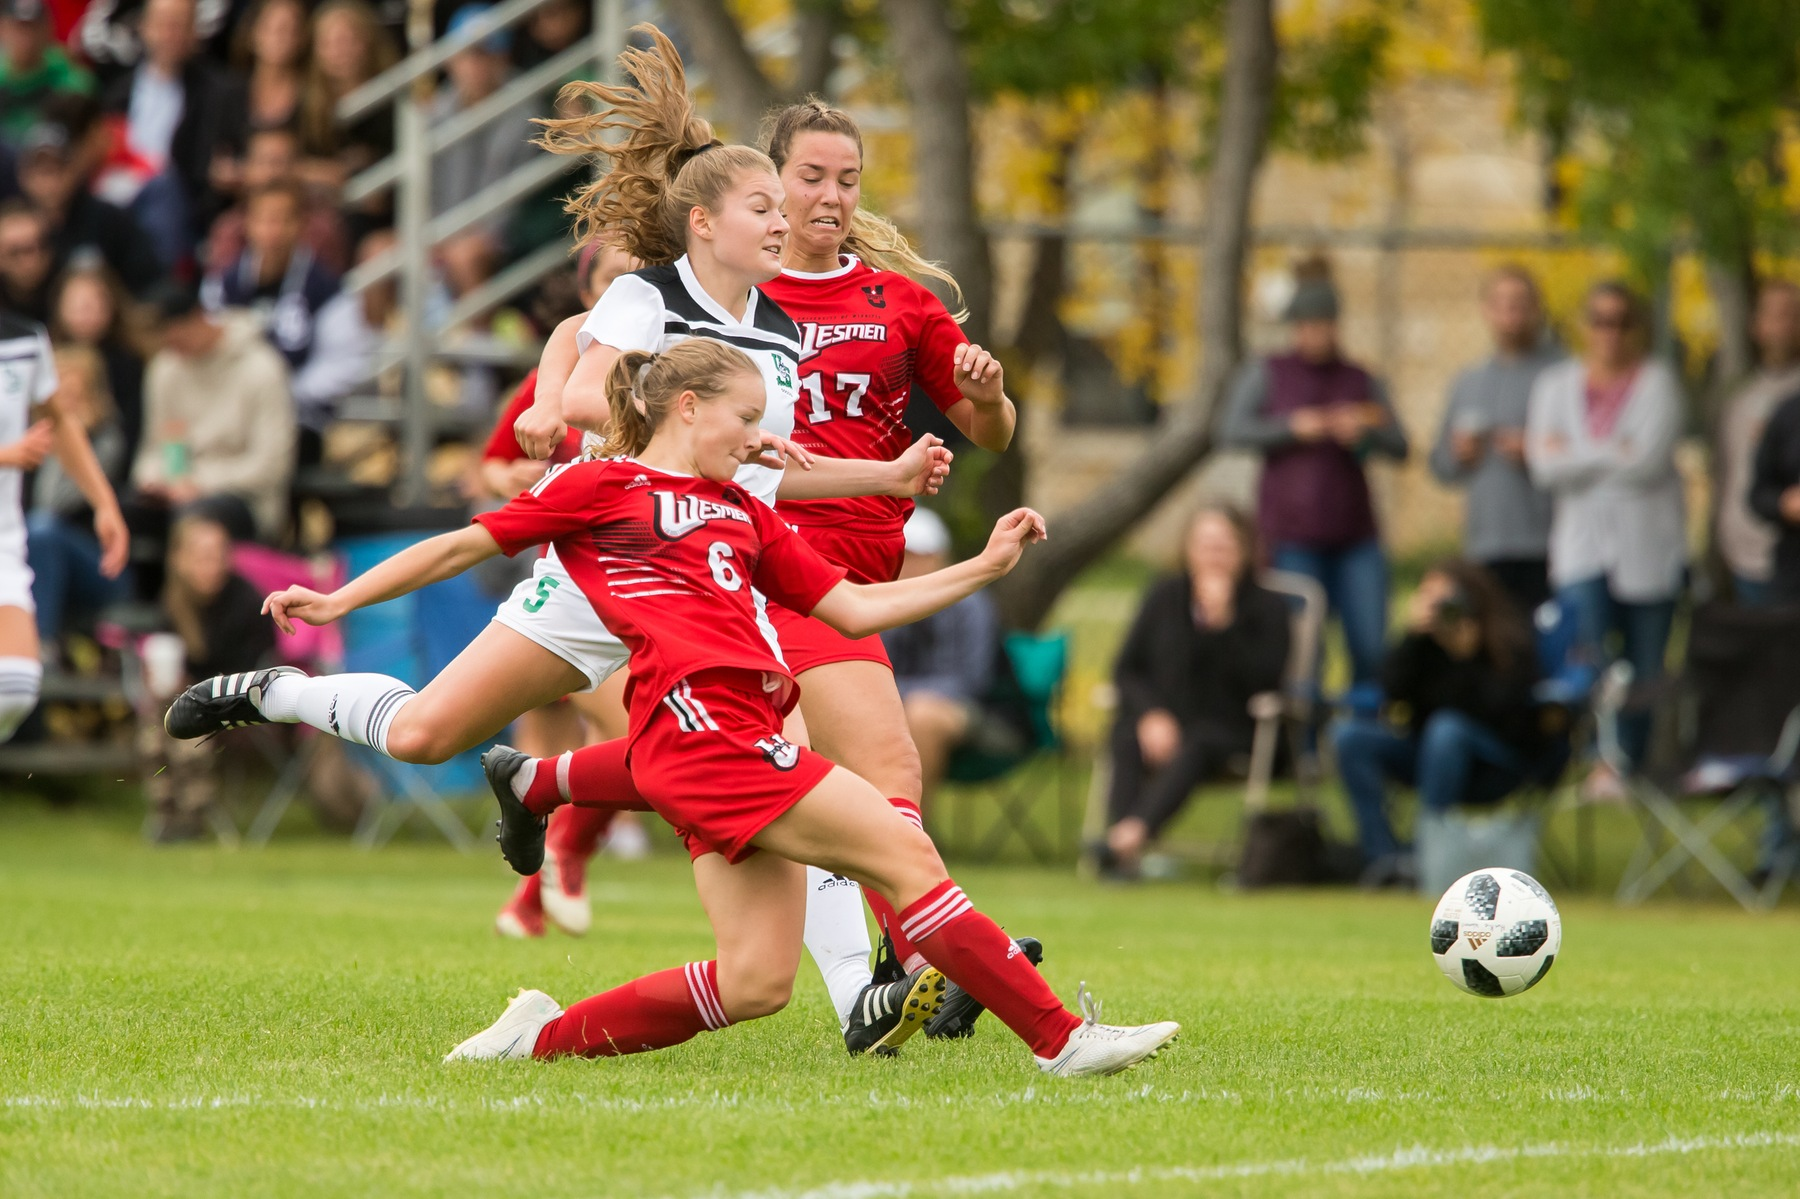 Wesmen defender Sara Boissonneault (6) slide tackles a Saskatchewan player during Canada West action Saturday in Saskatoon. (Huskie Athletics photo)